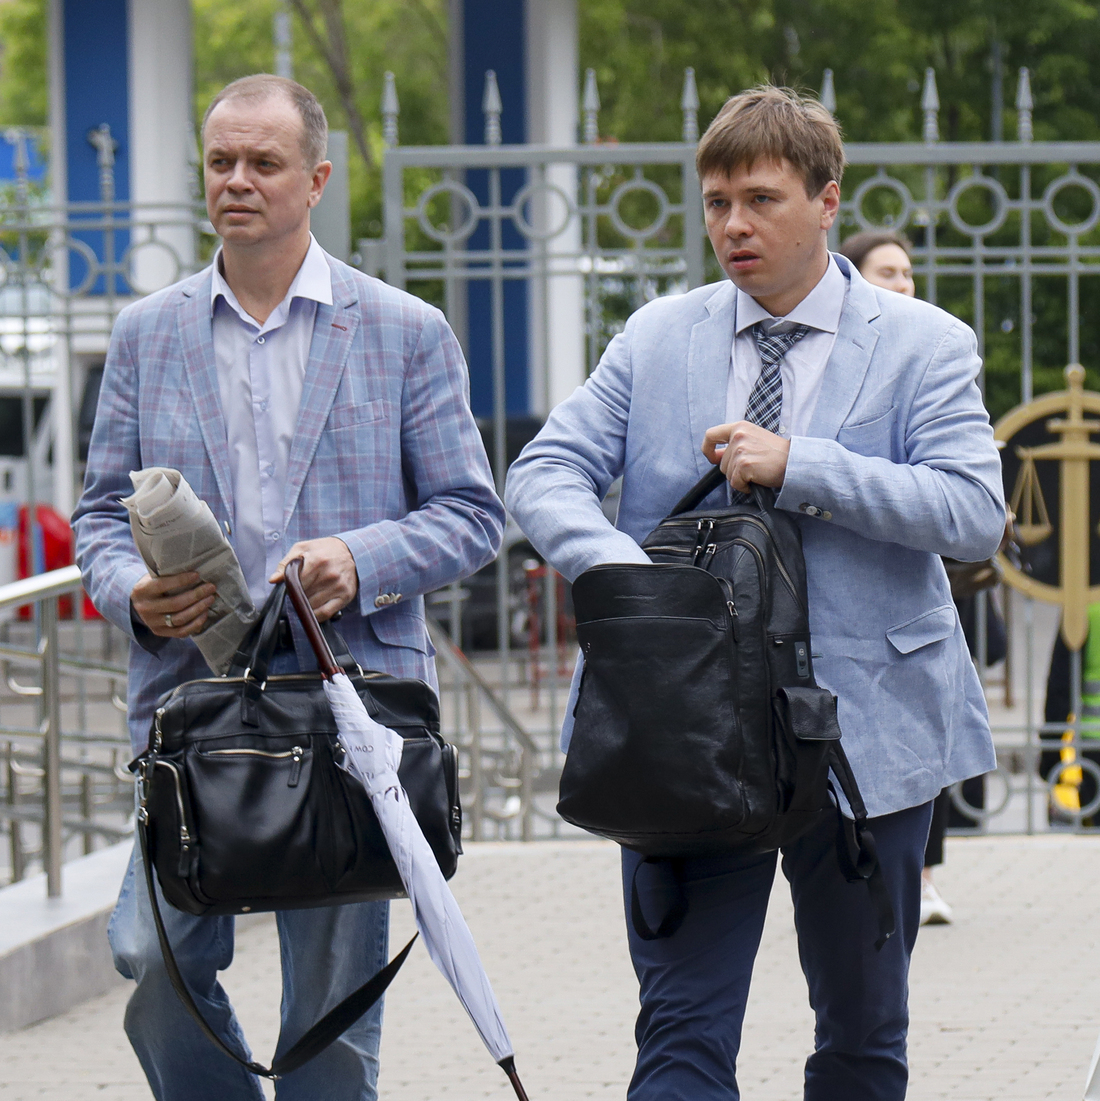 Russian court bans groups linked to Putin opponent Alexei Navalny: NPR